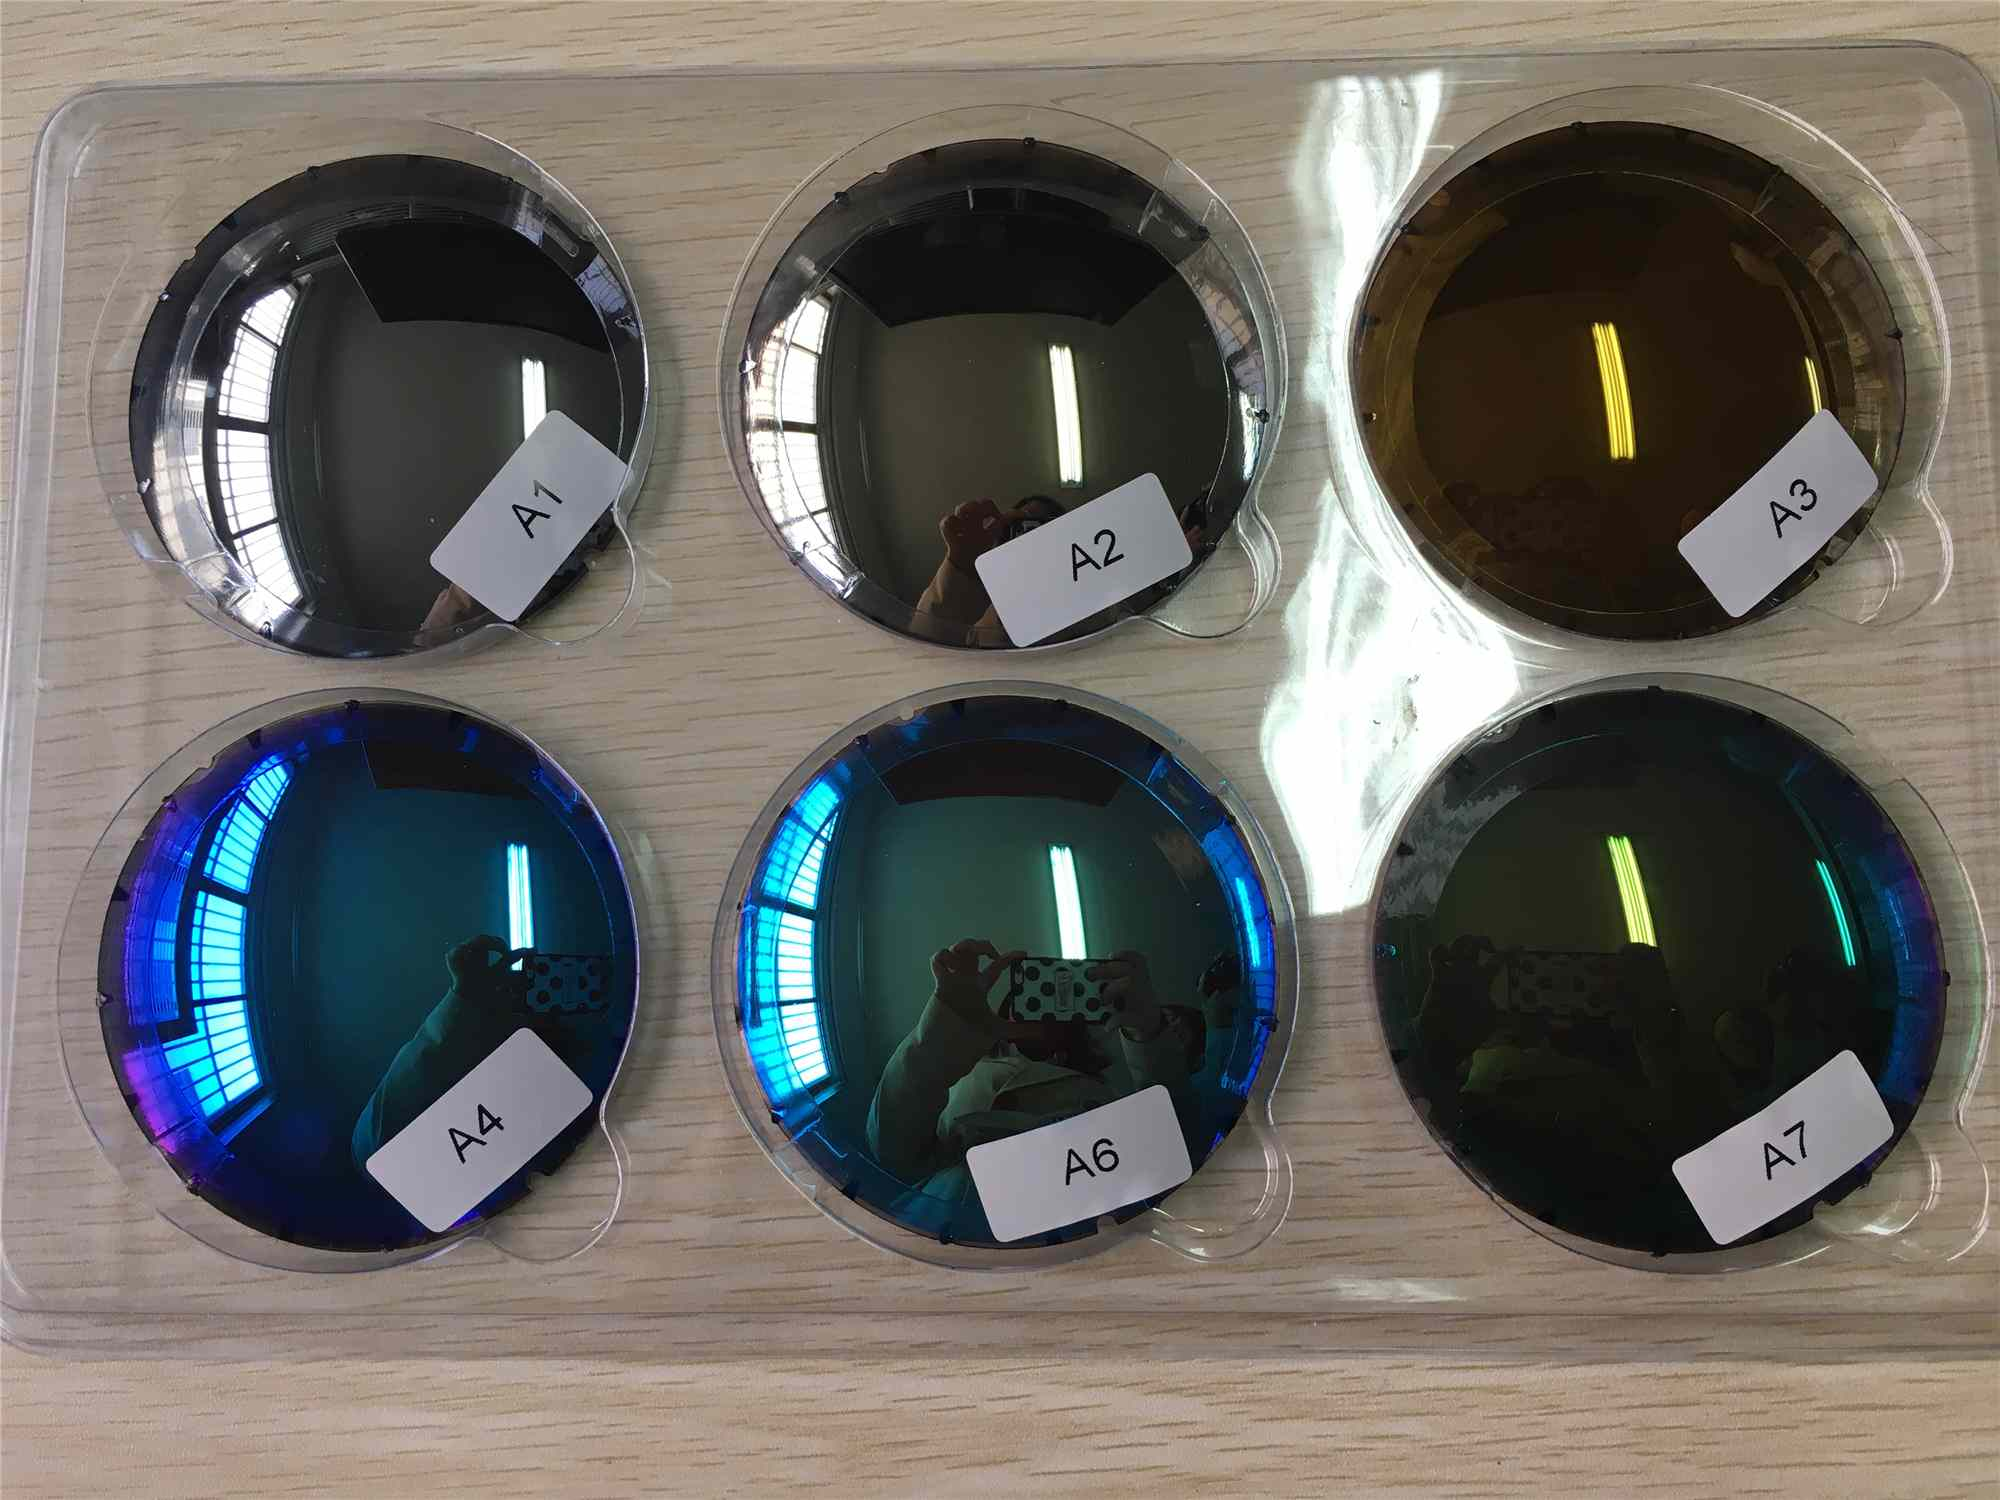 Index 1.499 Polarized Eyeglass Lenses Hard Coating Mirror / REVO Coating